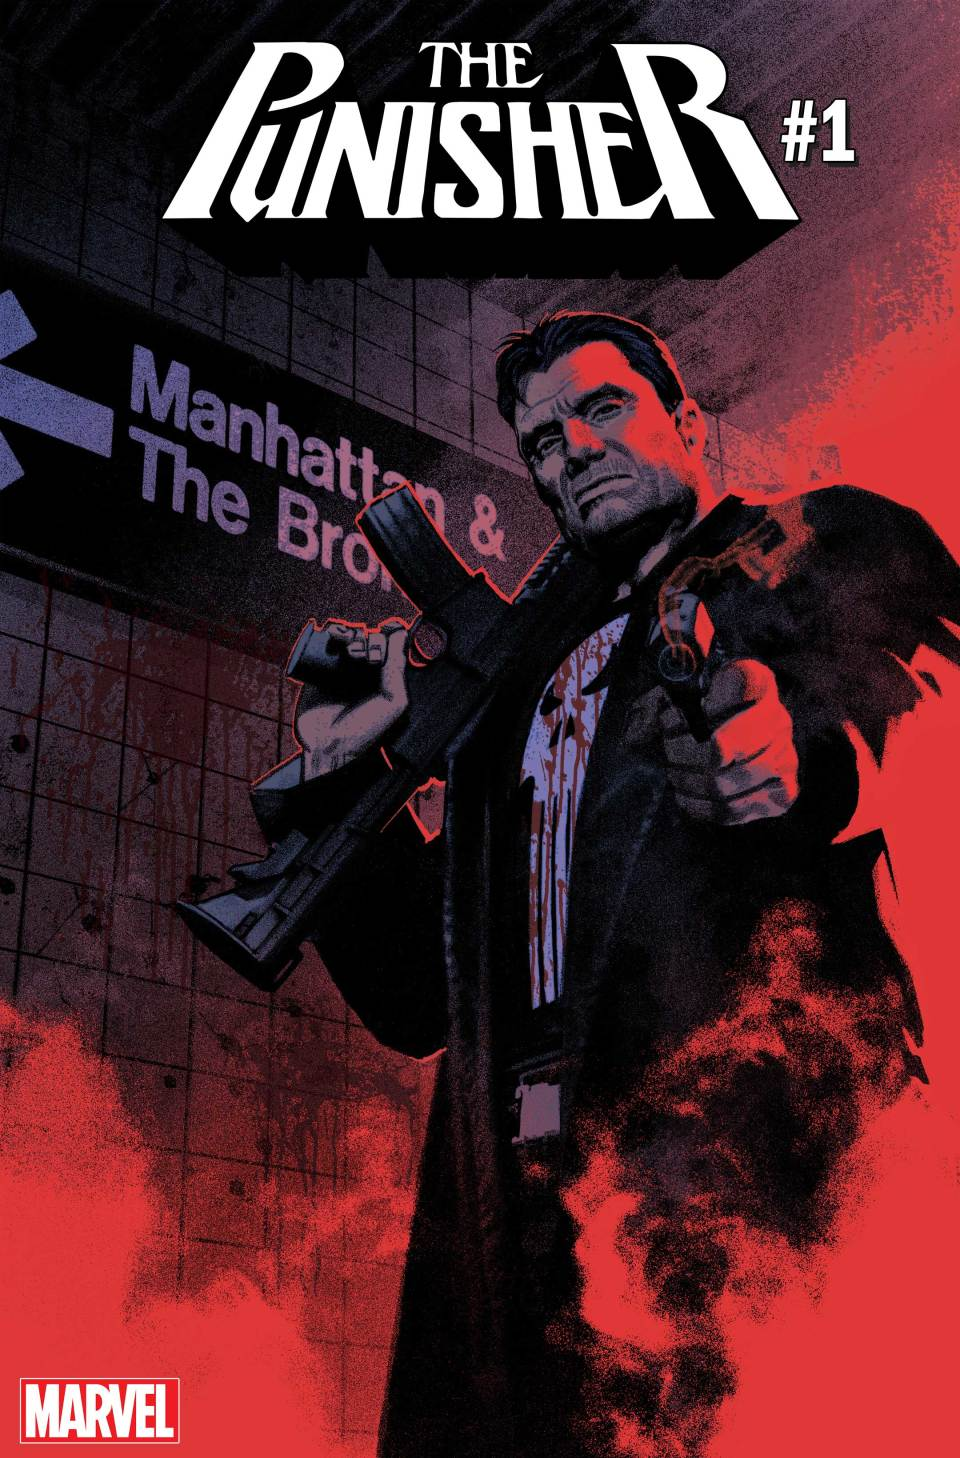 Image result for the punisher #1 relaunch comic